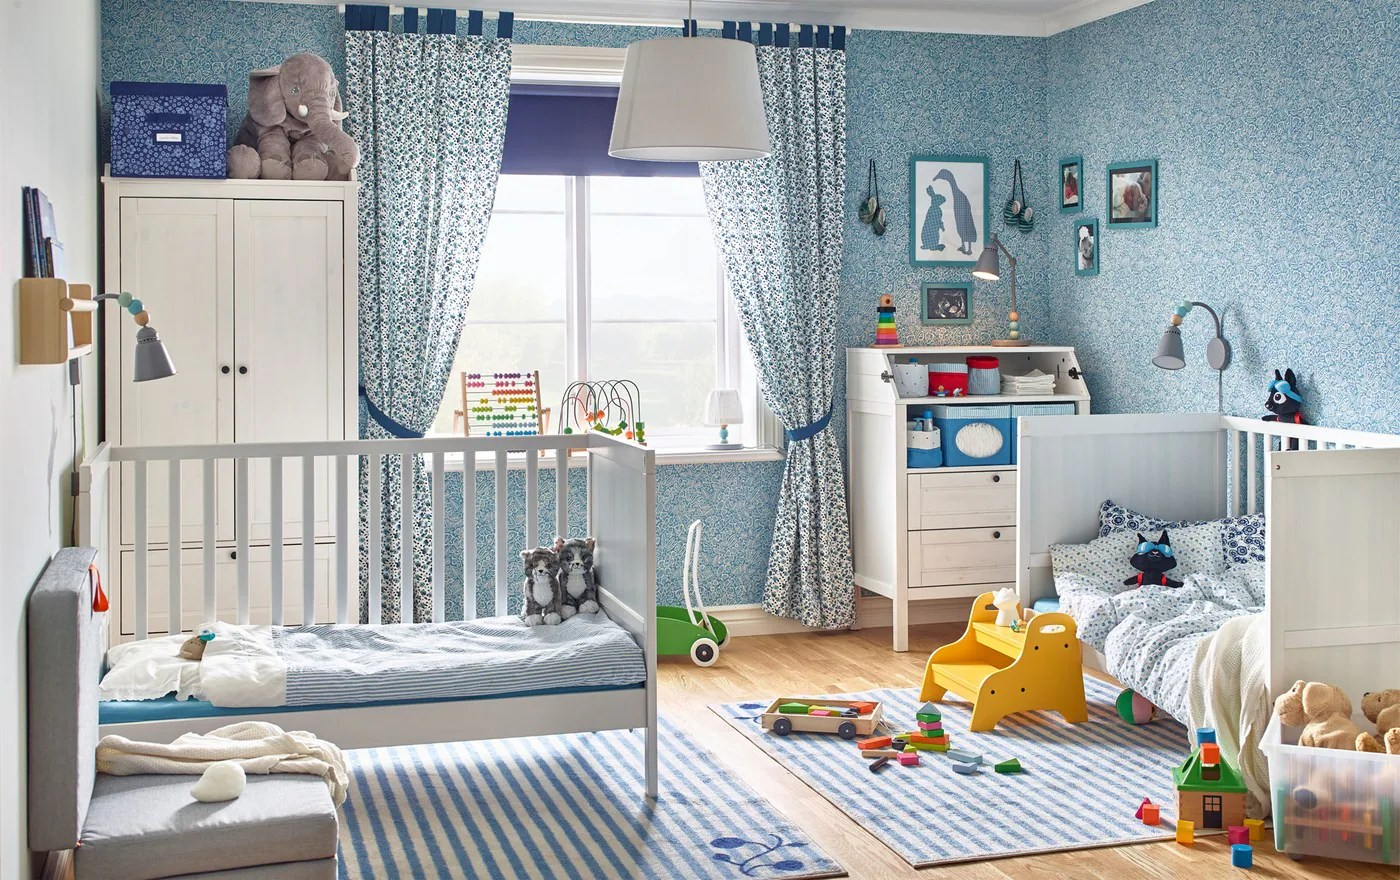 Kinderzimmer Von Ikea Baby Furniture - Ikea